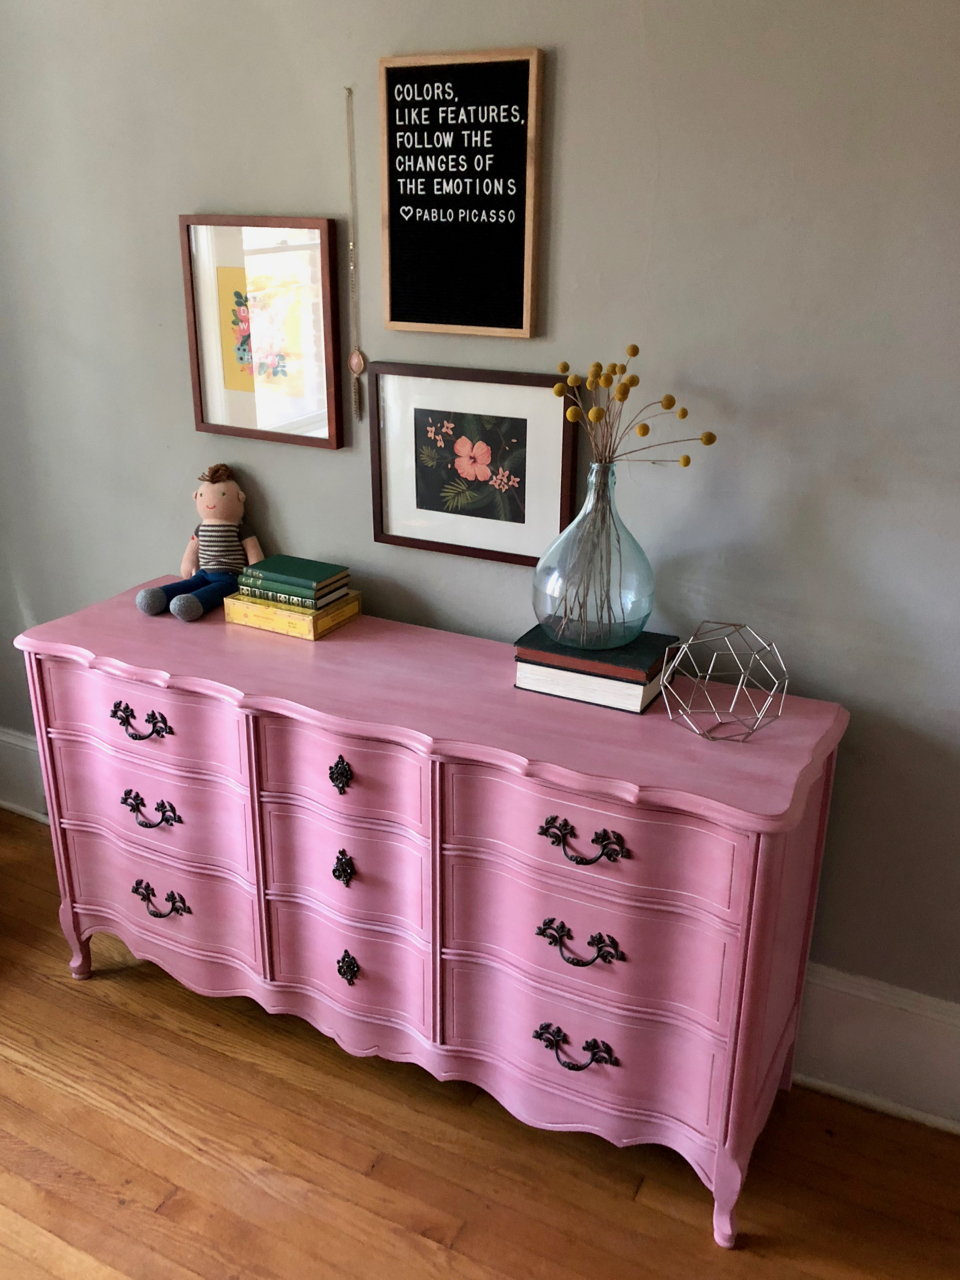 jo-torrijos-a-simpler-design-atlanta-painted-furniture-annie-sloan-pink-dresser-french-provincial-5.jpg